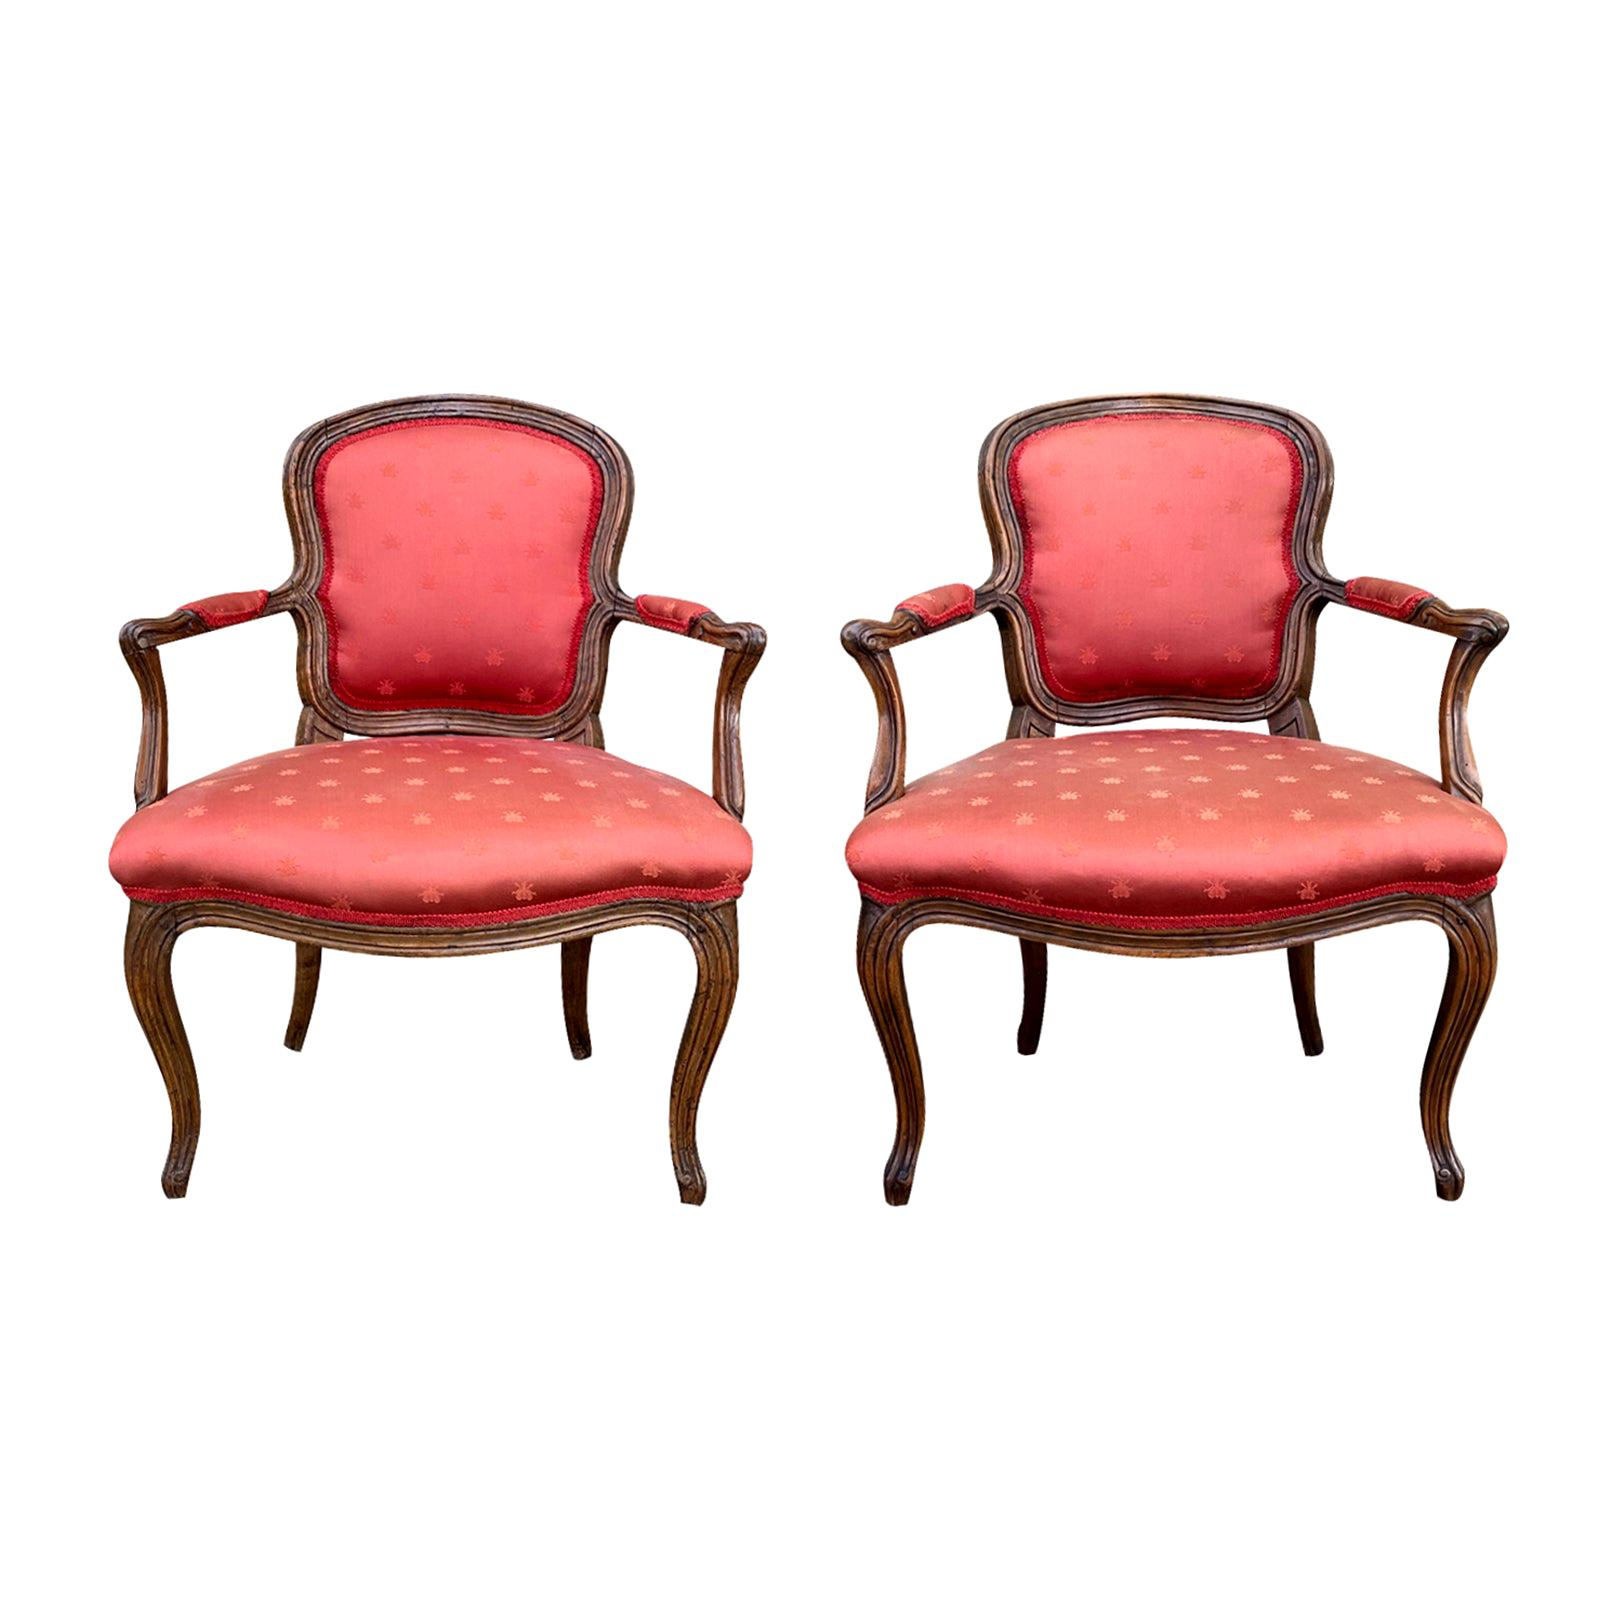 Pair of 18th-19th Century Italian Armchairs